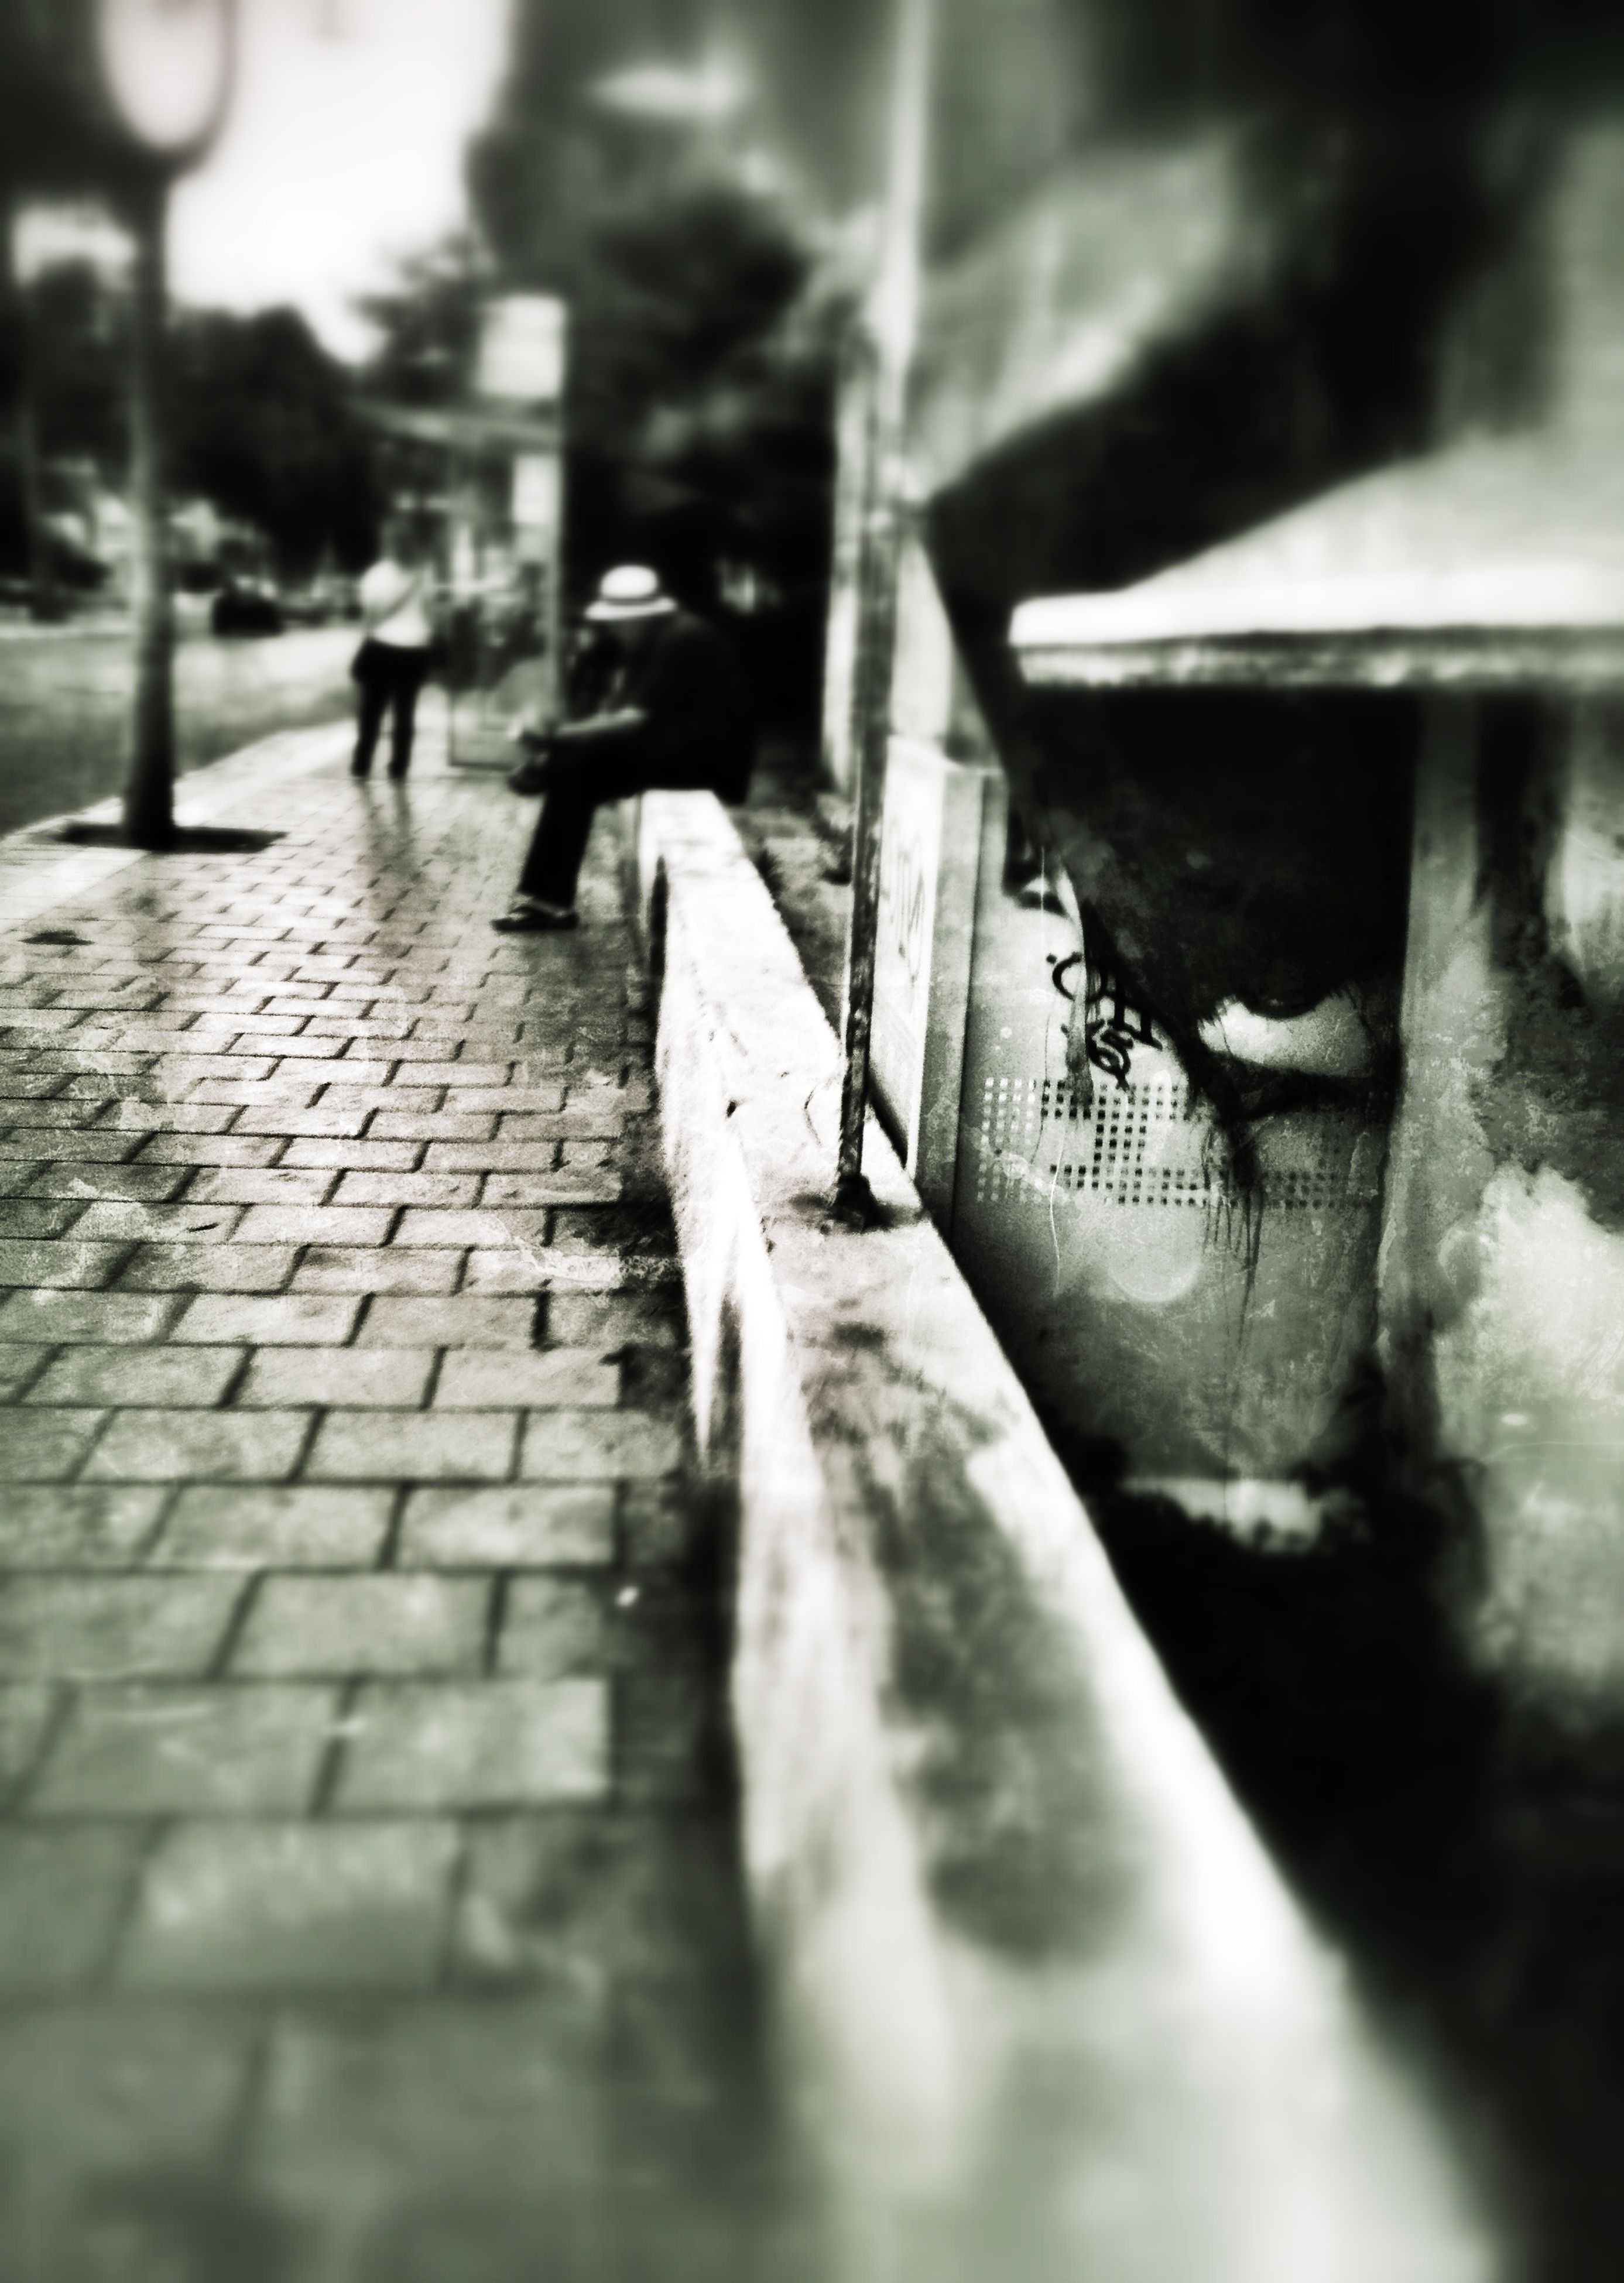 animal themes, one animal, bird, selective focus, street, wildlife, walking, animals in the wild, cobblestone, surface level, focus on foreground, outdoors, footpath, full length, day, pigeon, sunlight, sidewalk, pavement, wood - material